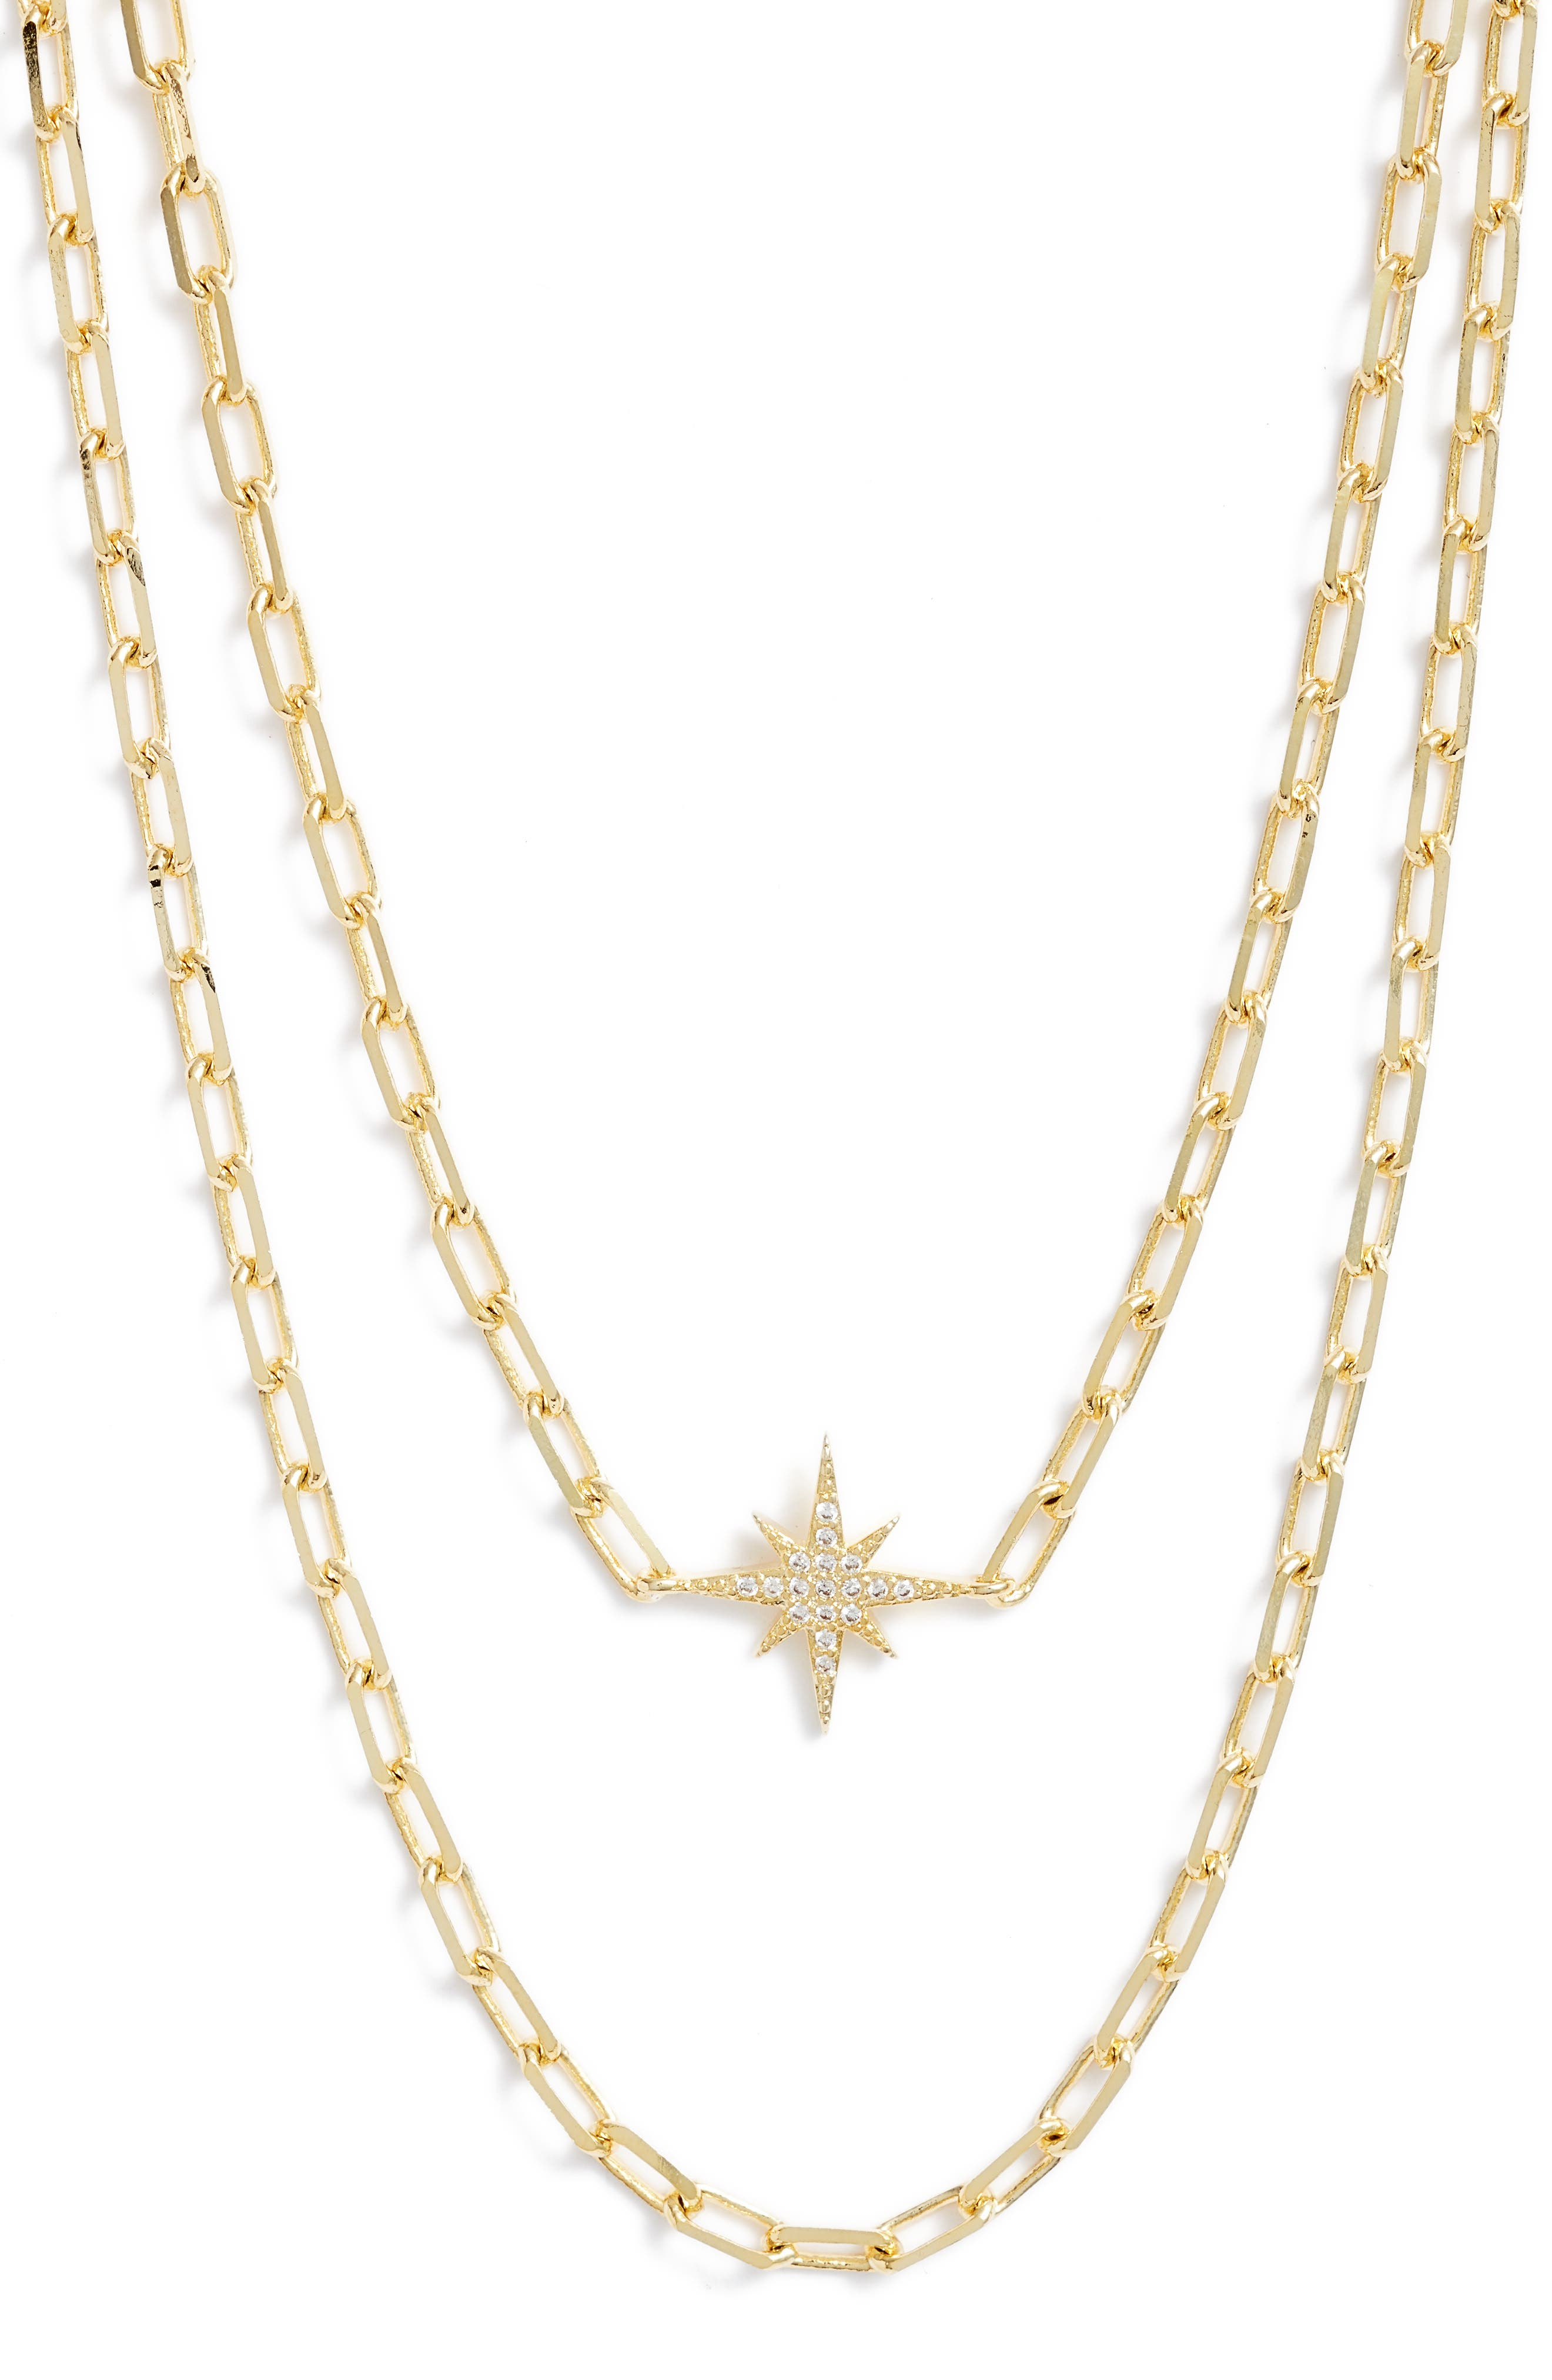 Bracha Starburst Layered Pendant Necklace in Gold at Nordstrom